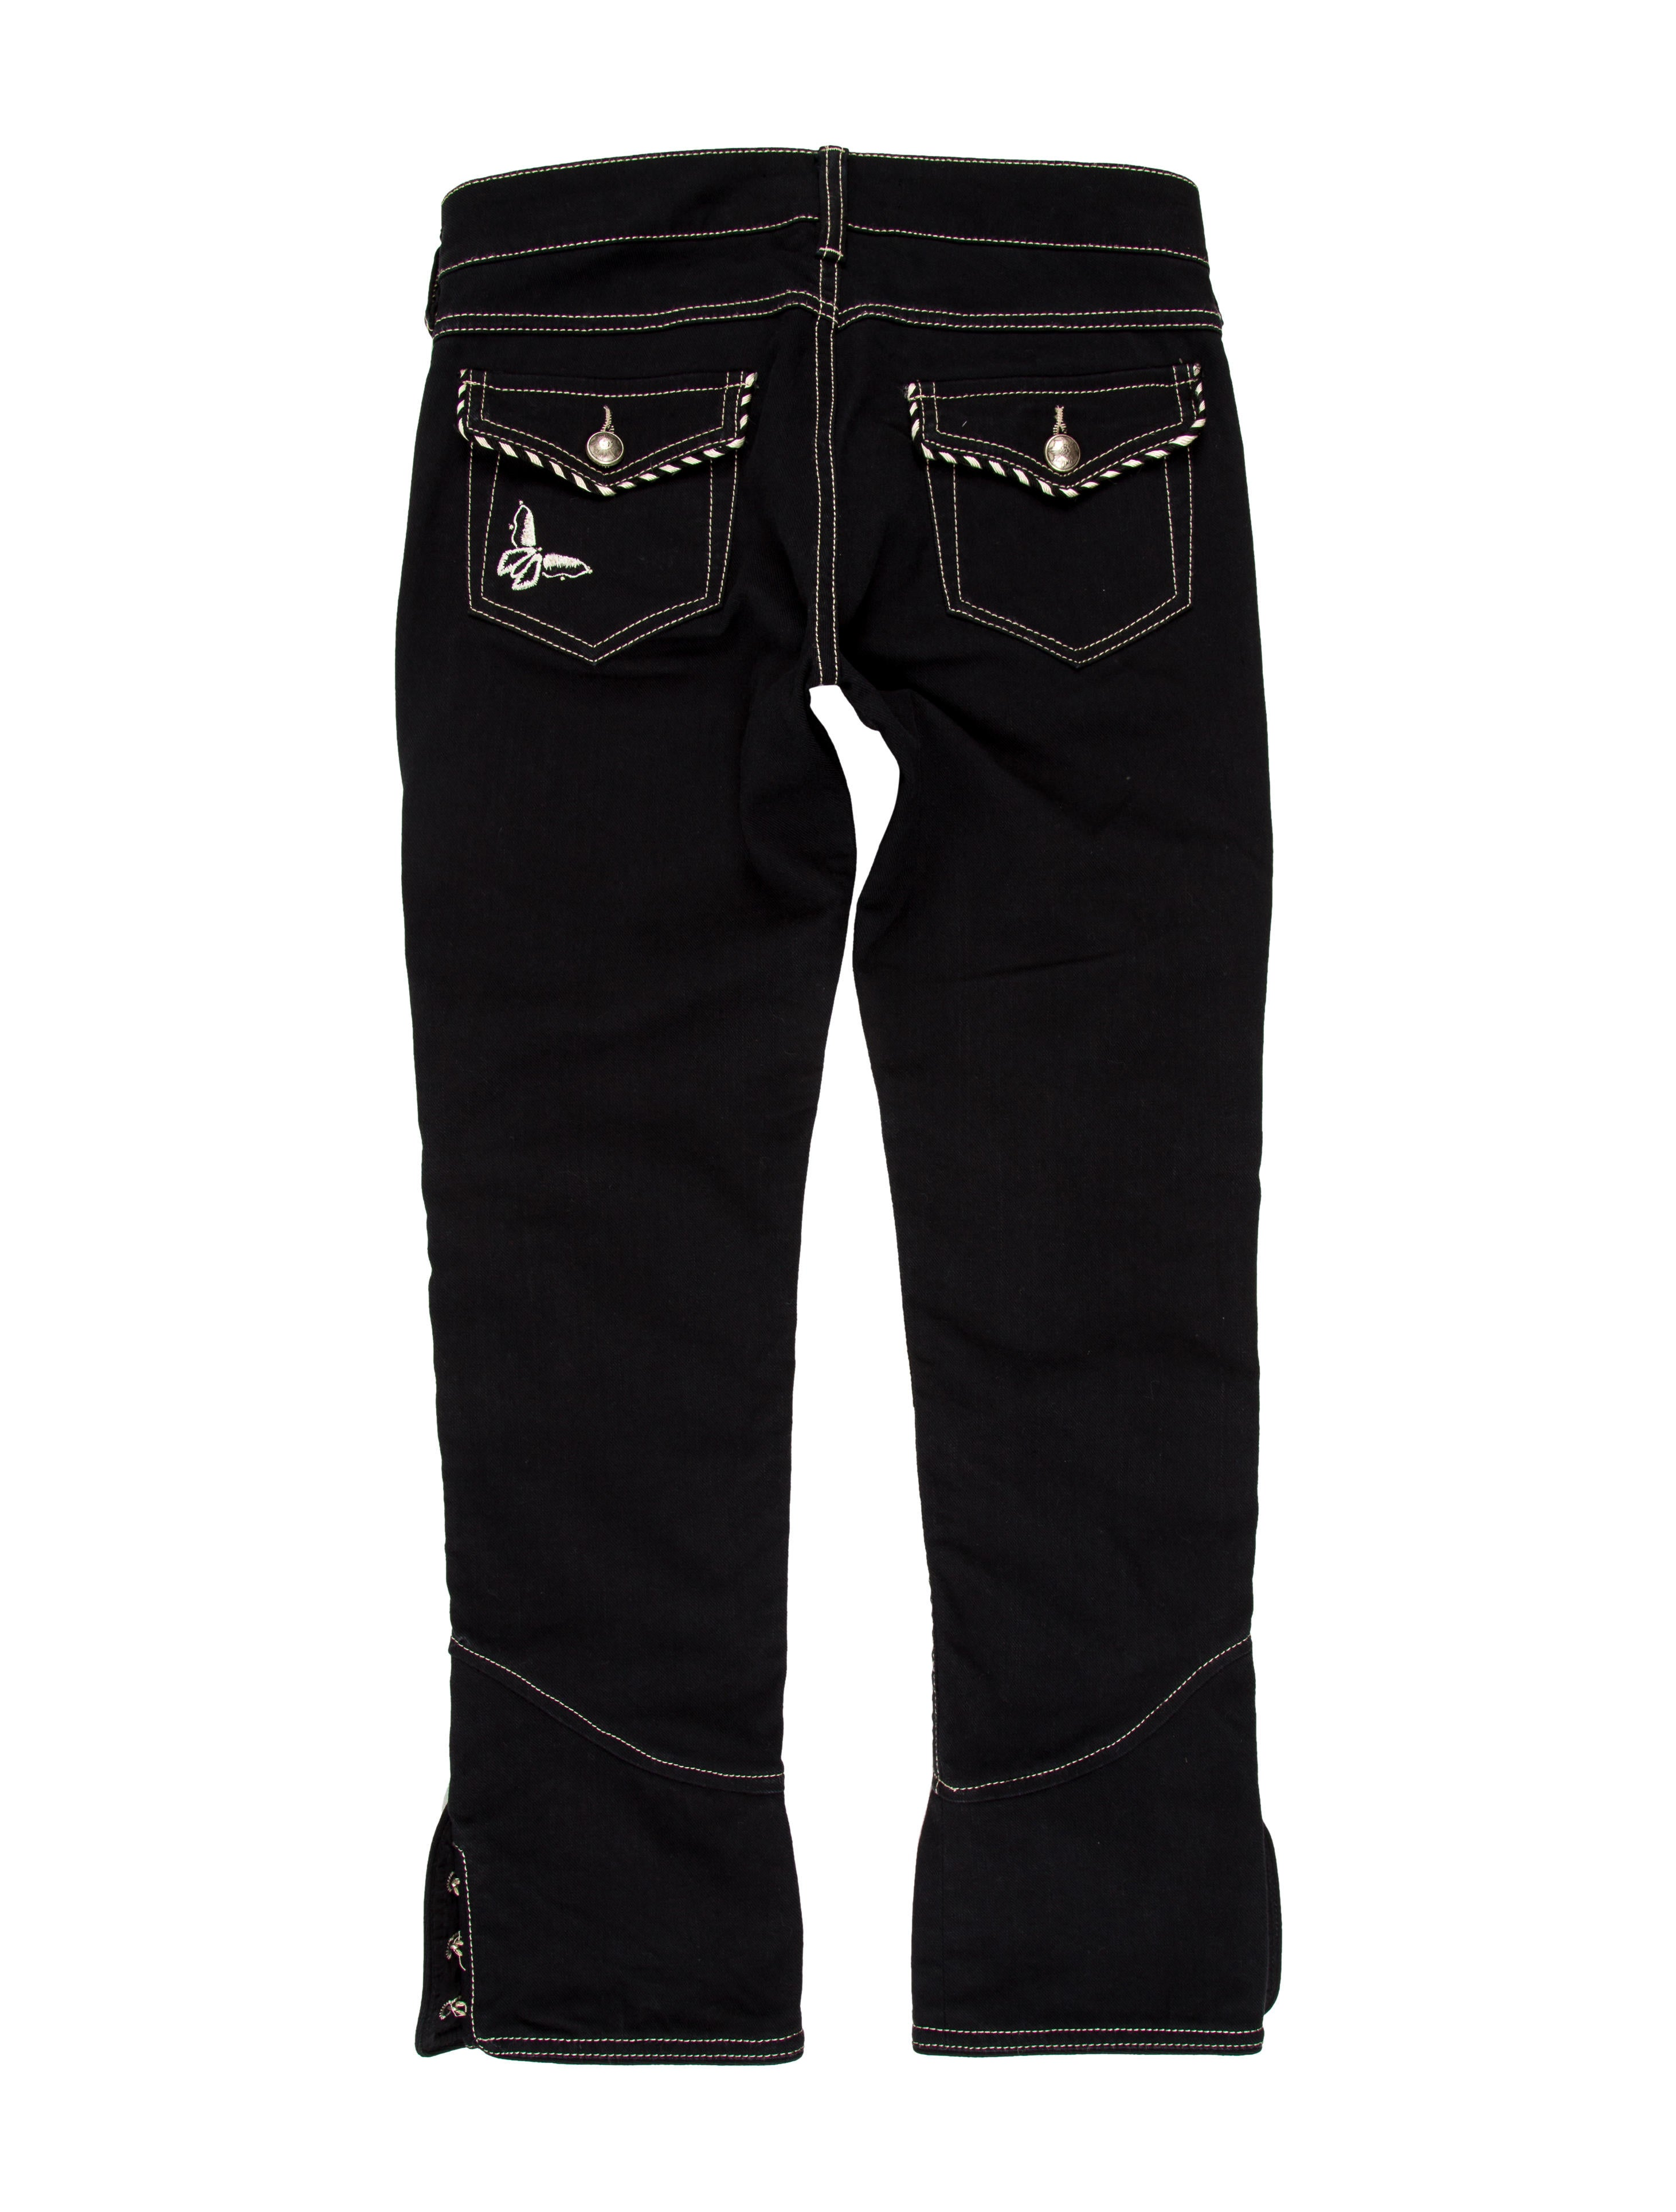 Isabel Marant Embroidered Cropped Jeans - Clothing - ISA39500 | The RealReal